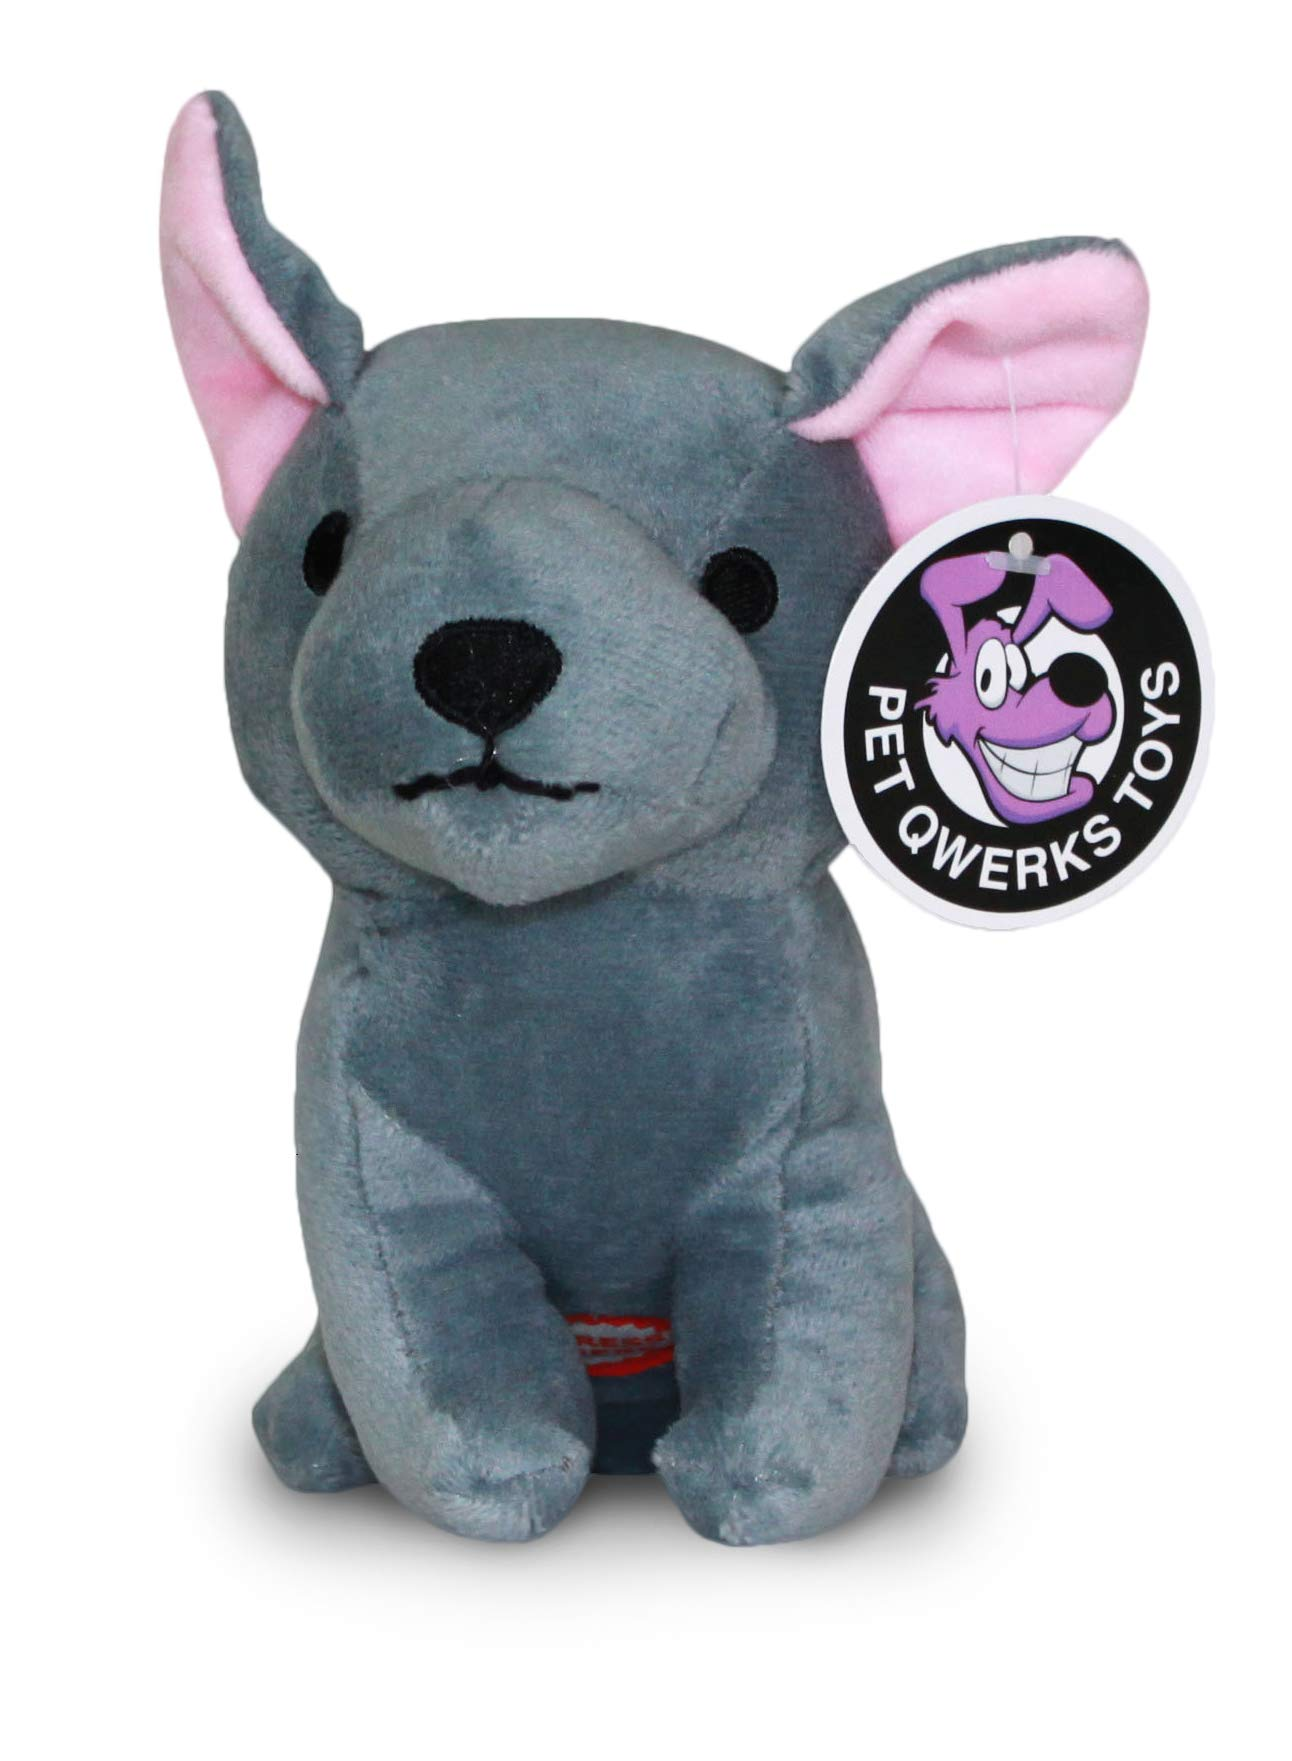 Pet Qwerks Dog Squeak Toys – Fun Interactive Squeaky Plush Pet Toy | with Cute Funny Sounds to keep boredom at bay…